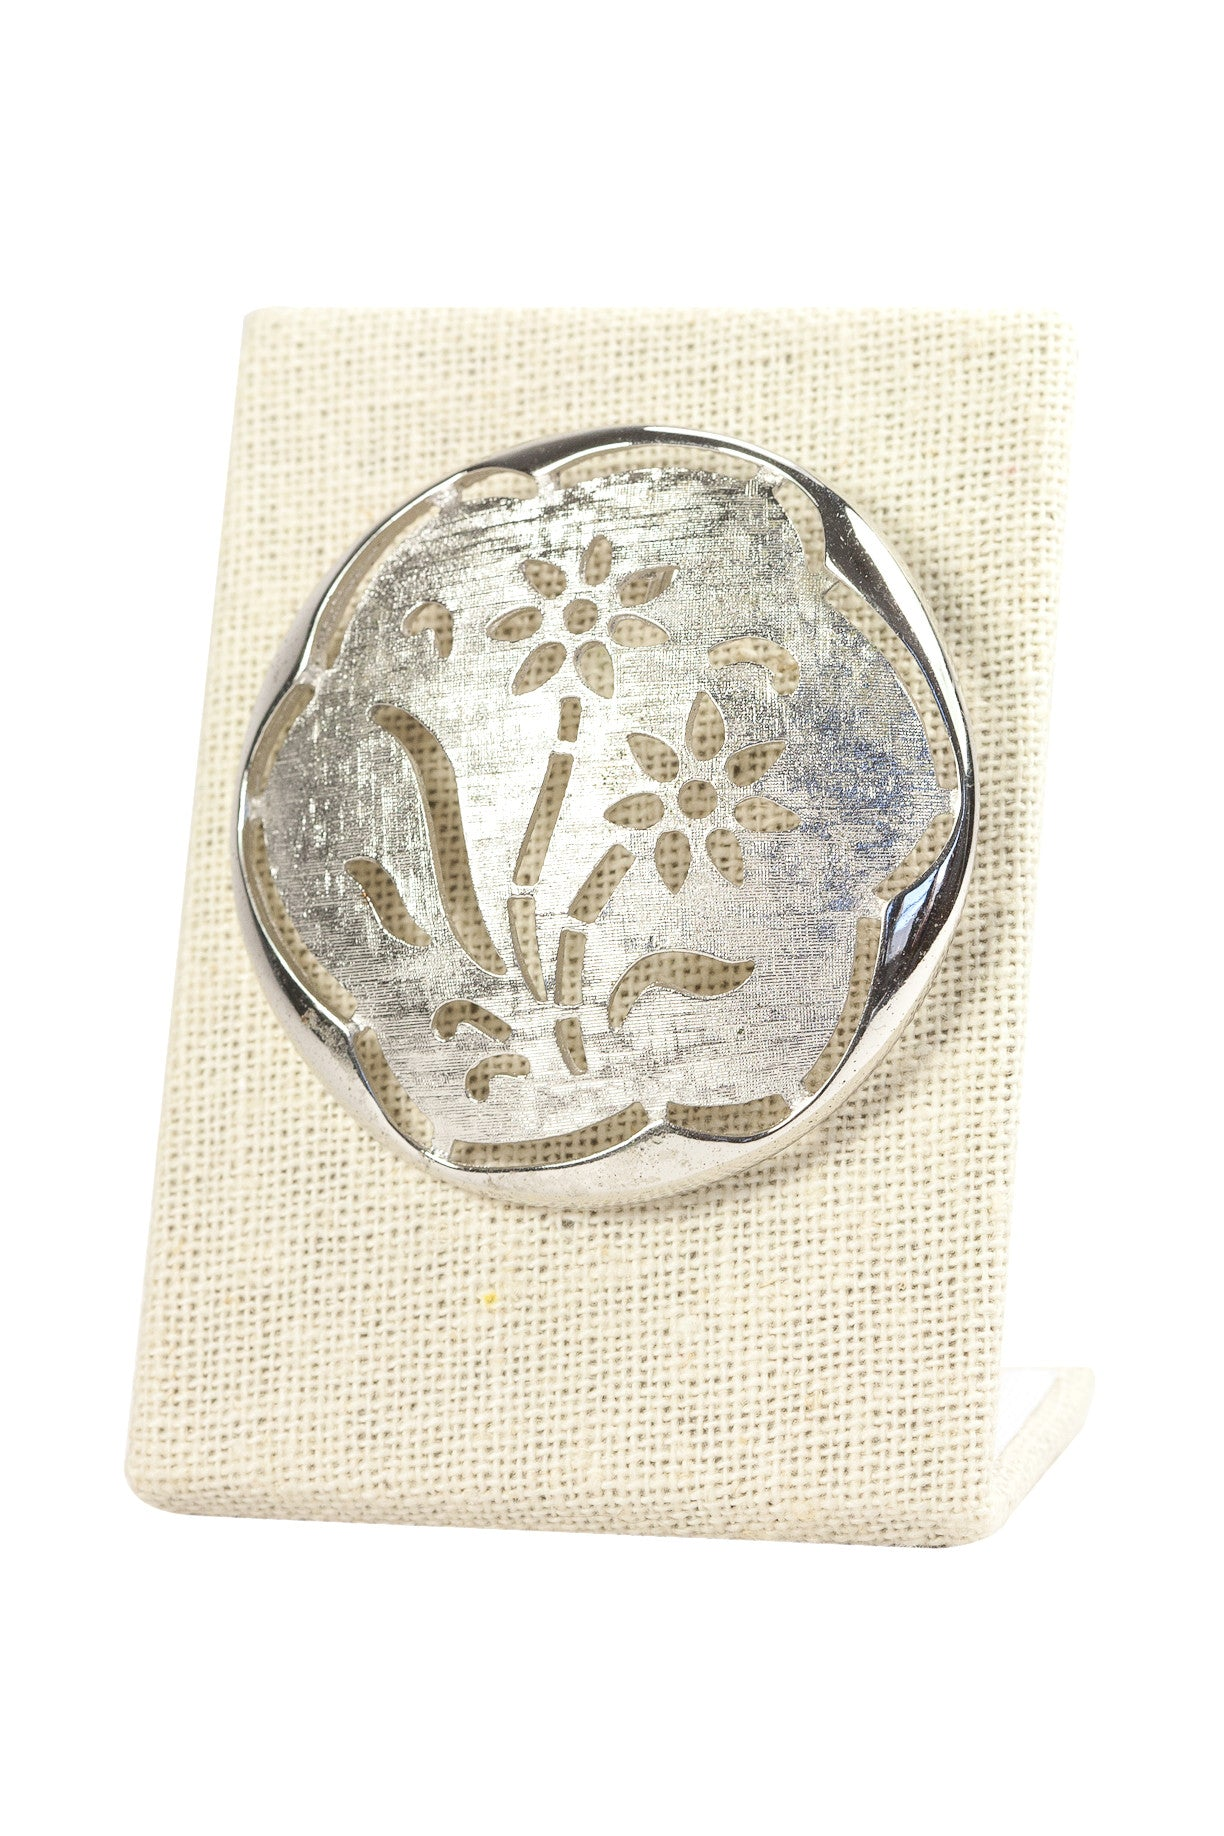 70's__Sarah Coventry__Silver Lace Brooch